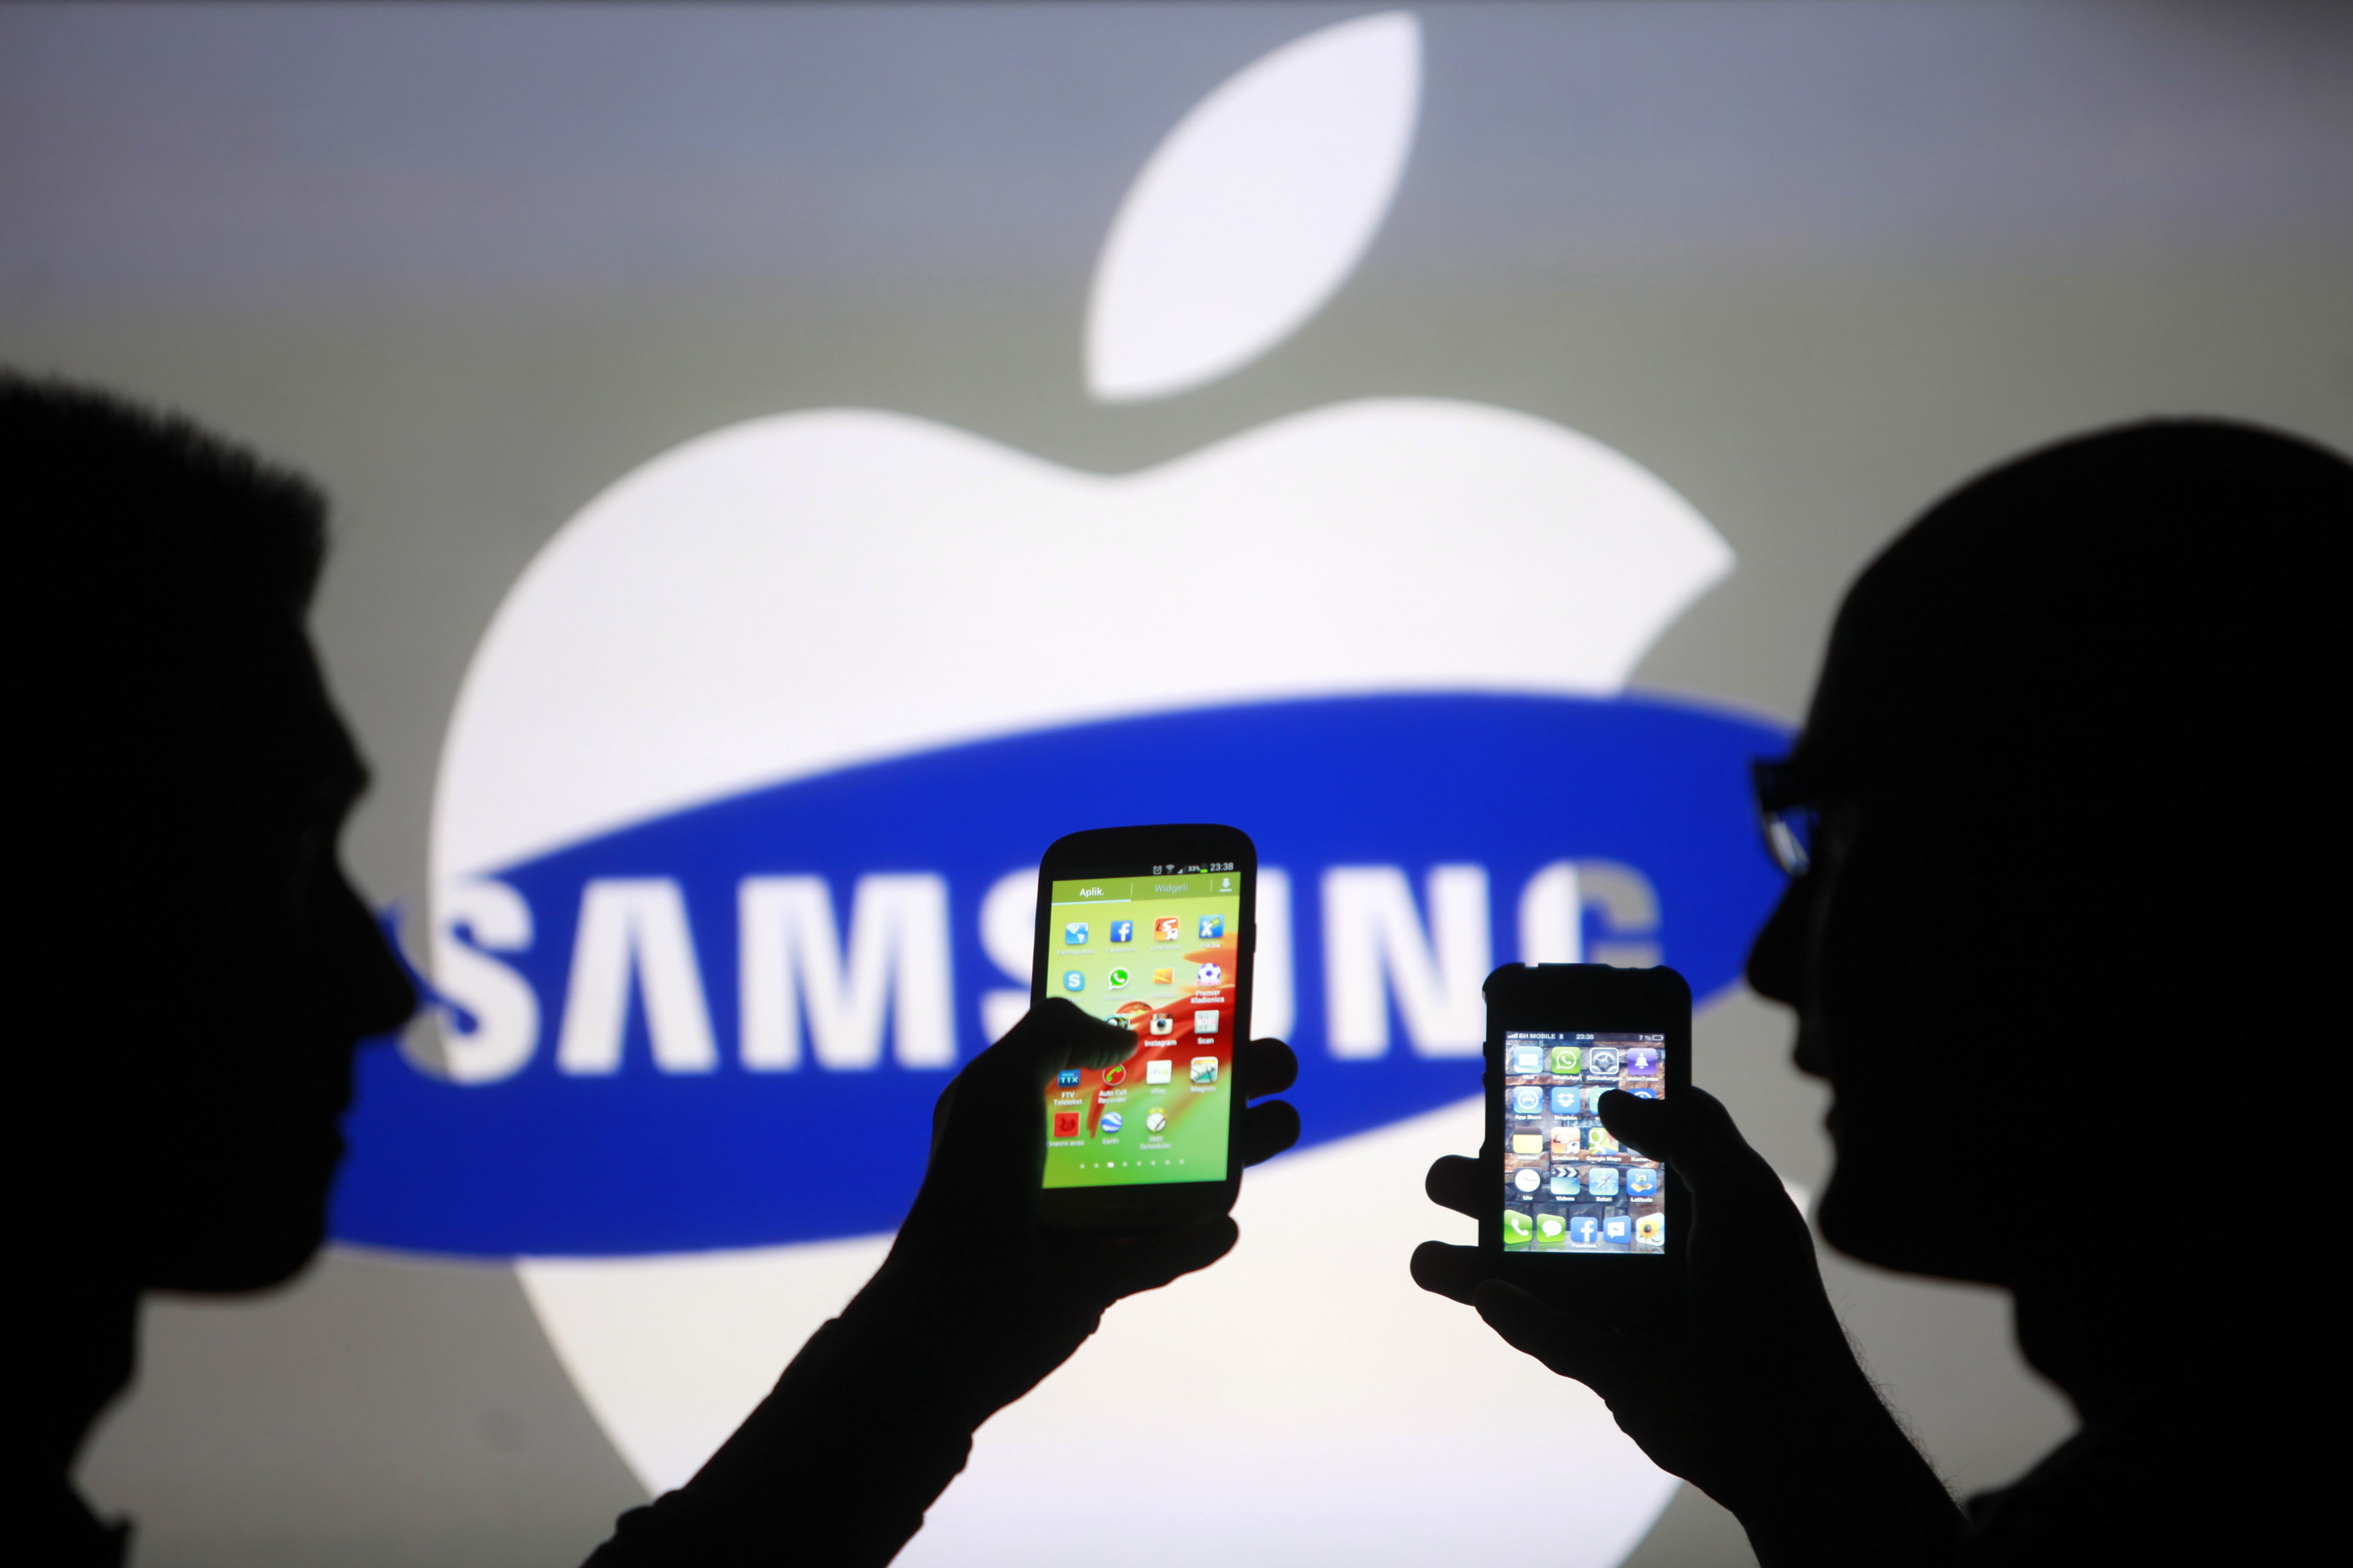 apple chiede 1 miliardo a samsung, foto silohuette di telefoni Galaxy e iPhone